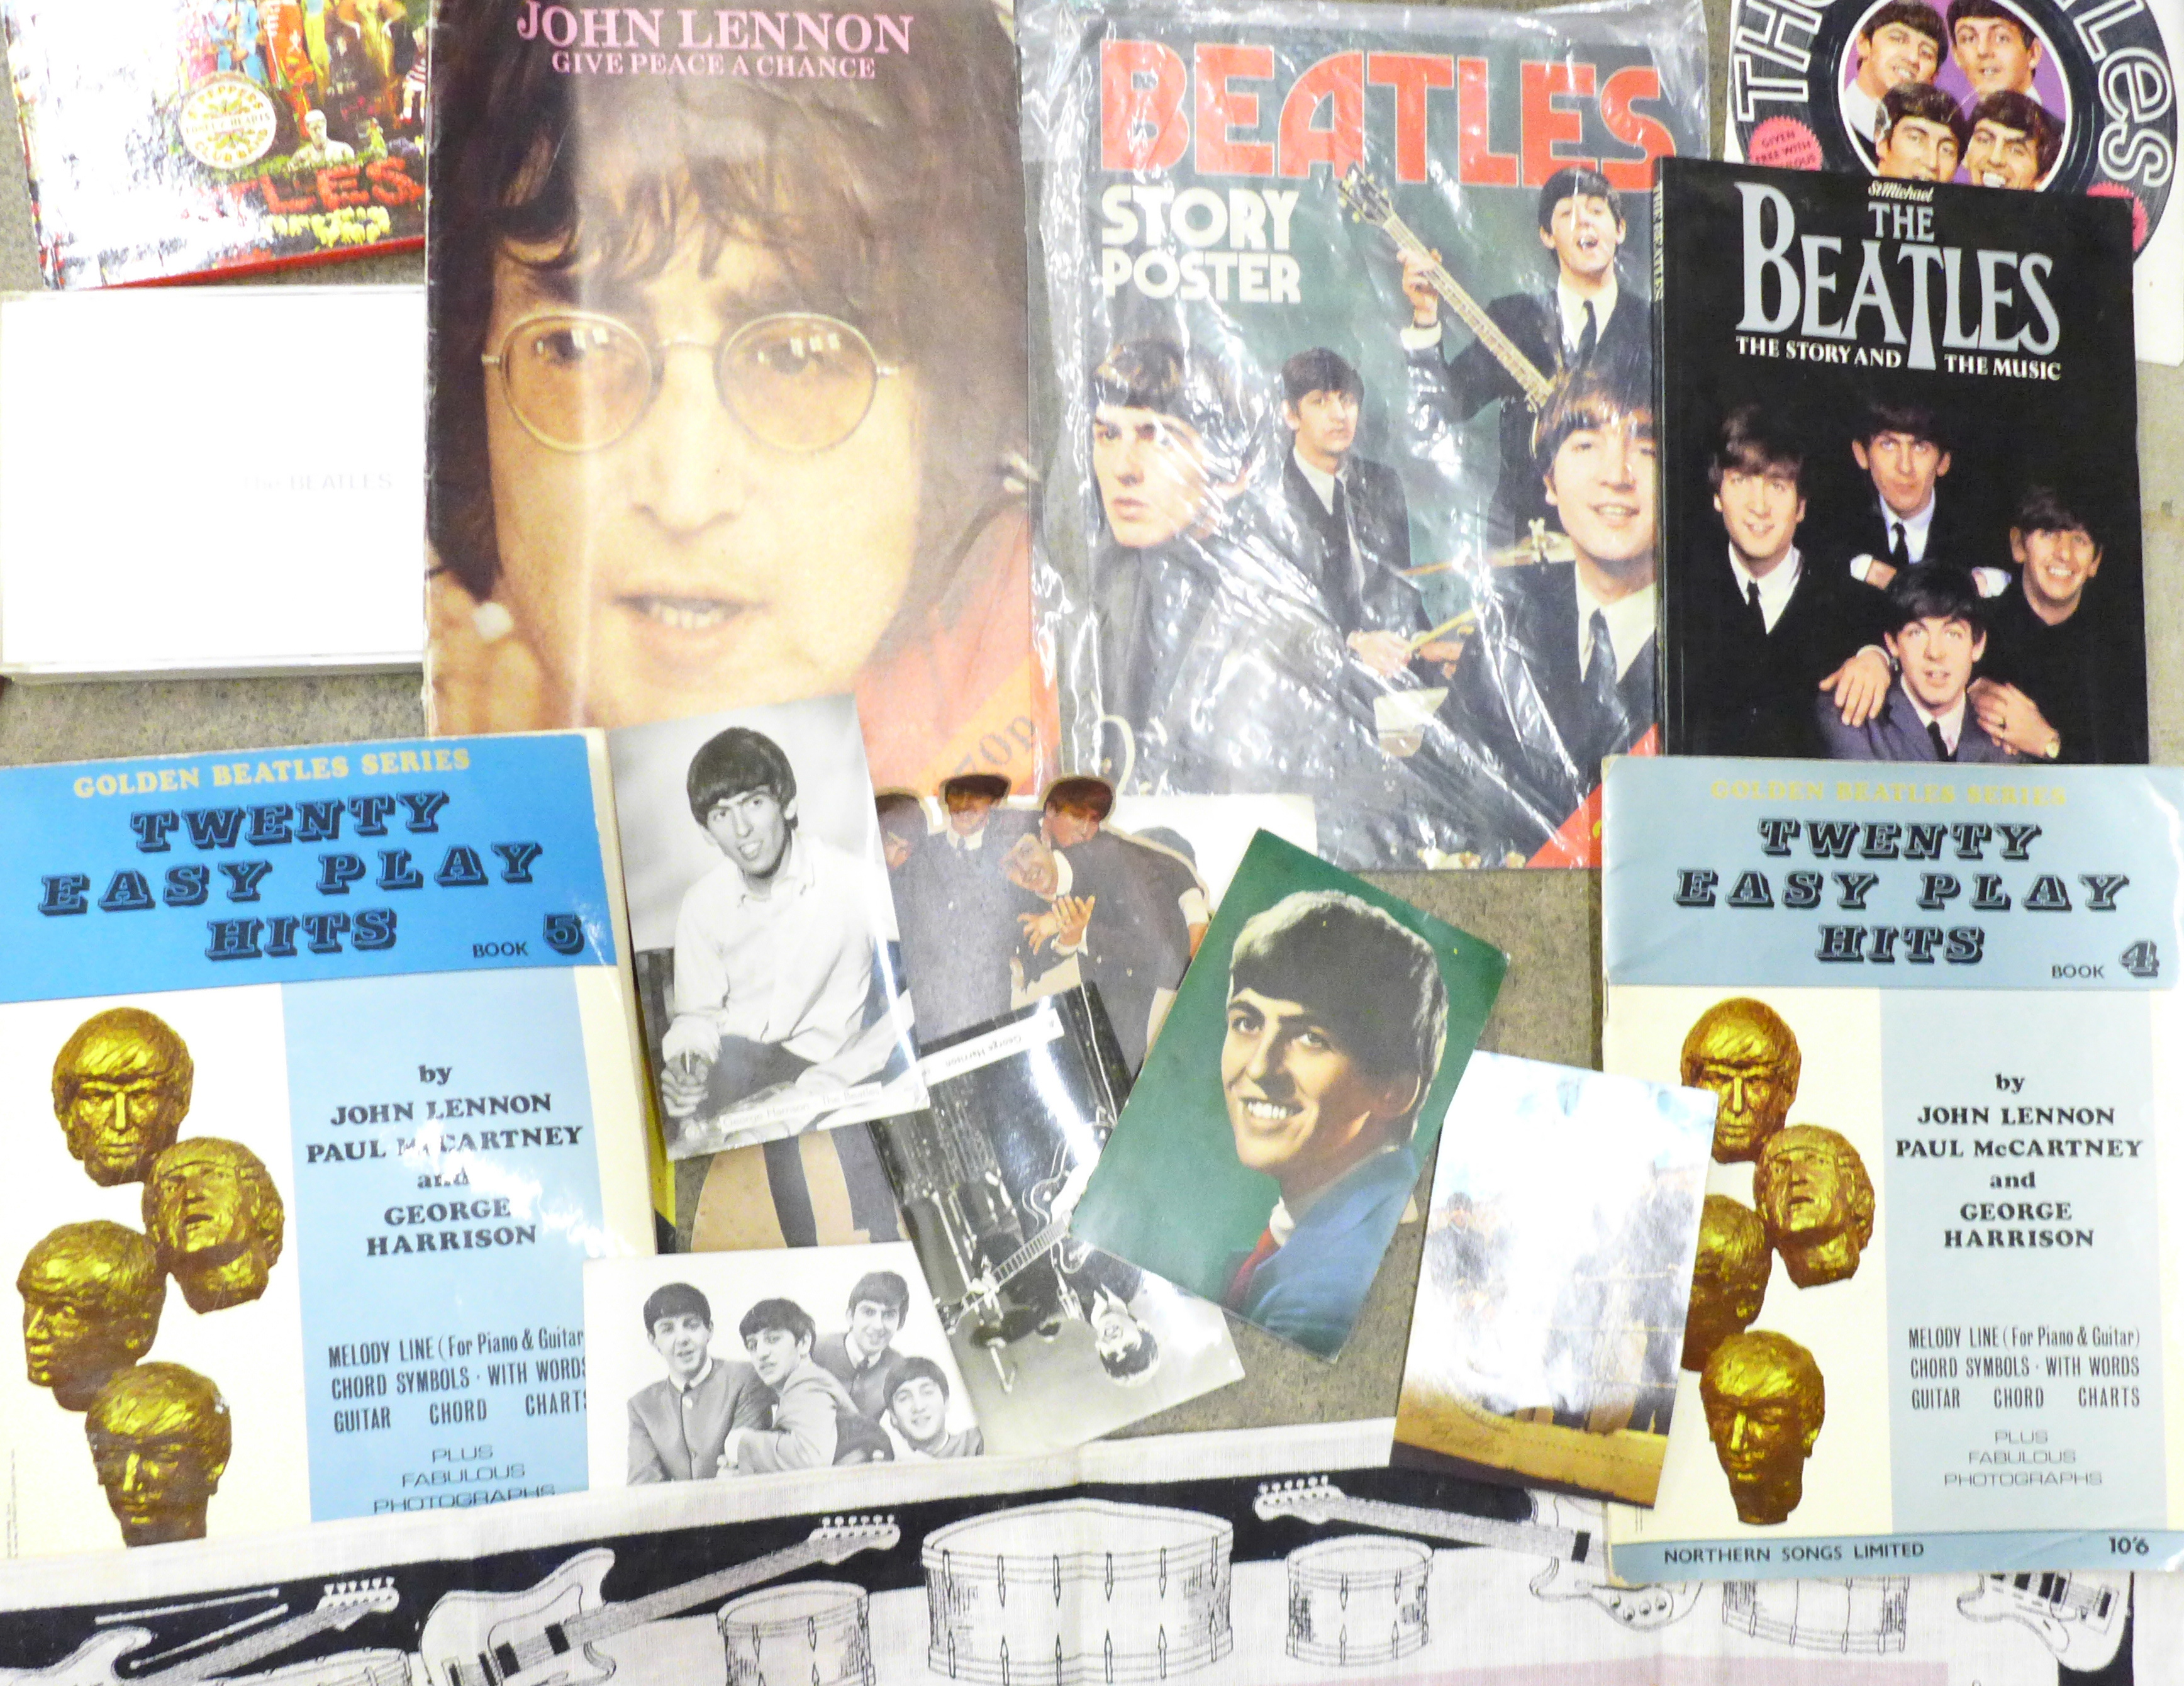 Beatles memorabilia including tea towel, postcards, promotional photograph, EasyPlay Hits songbooks, - Image 3 of 4